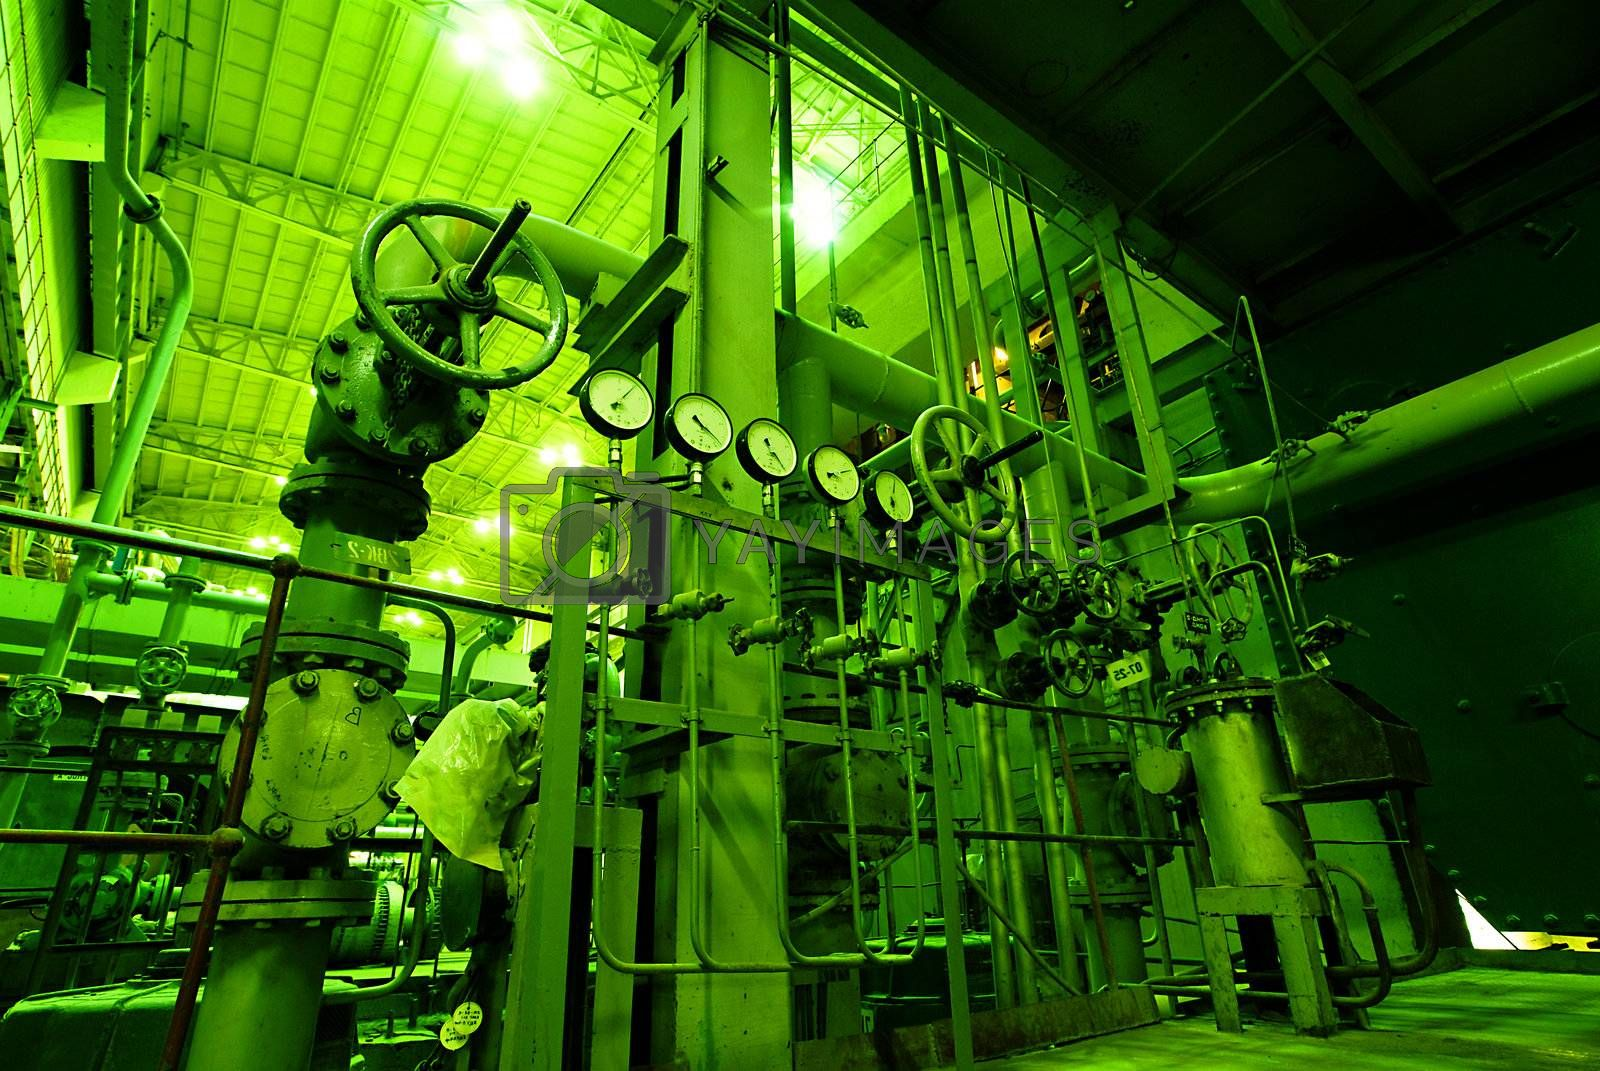 Equipment, cables and piping as found inside of a modern industr by nostal6ie